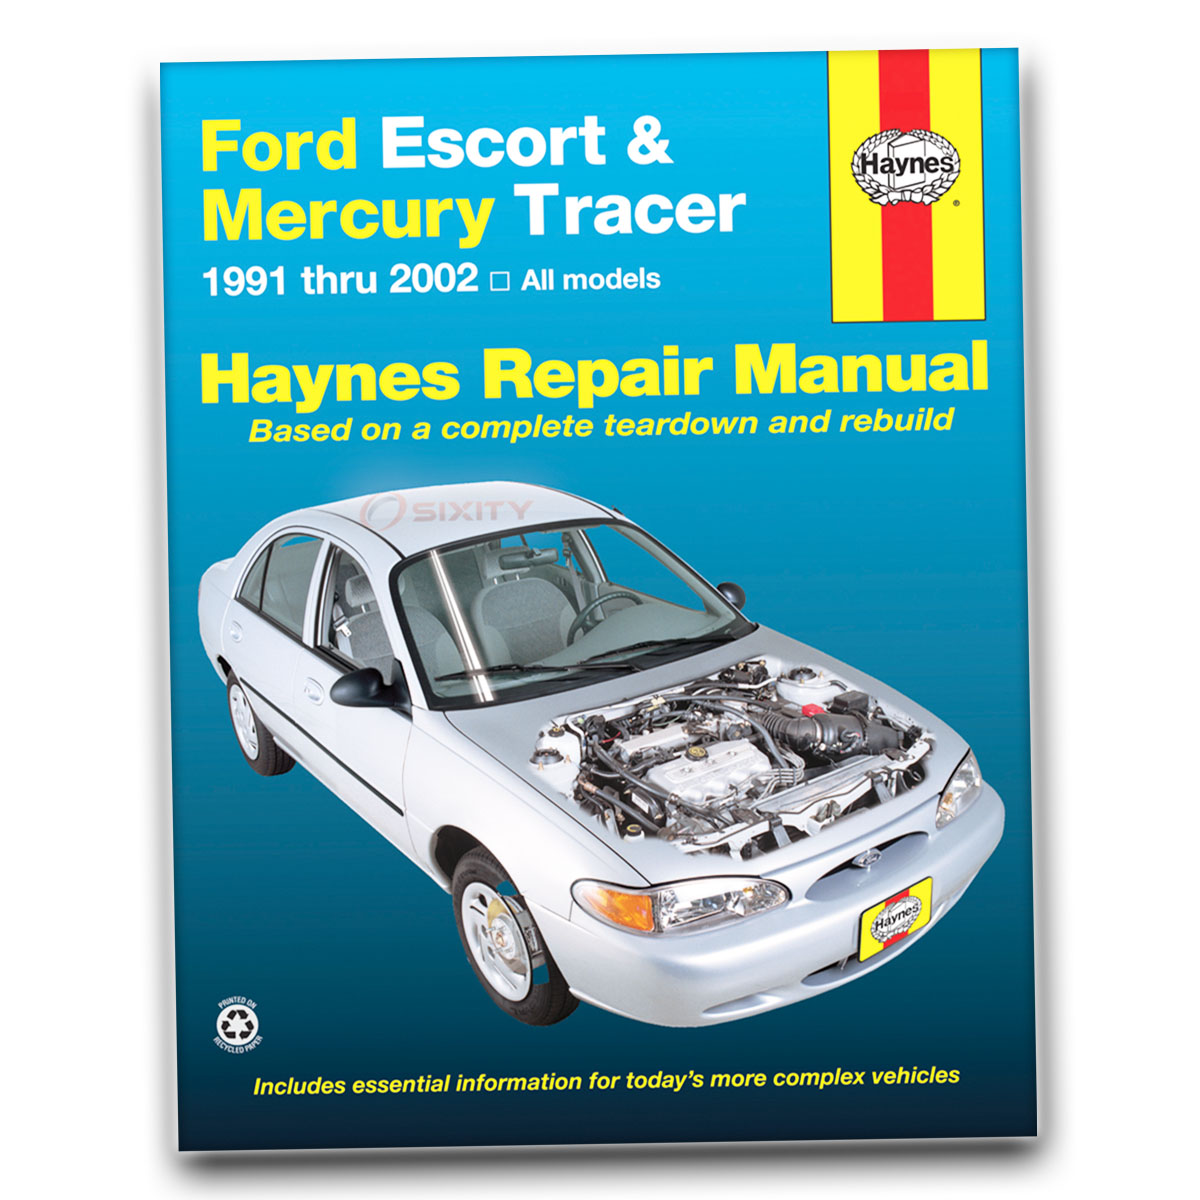 Details About Haynes Repair Manual For Ford Escort Lx Sport Gt Zx S R Hot Coupe Lx E Se Xw